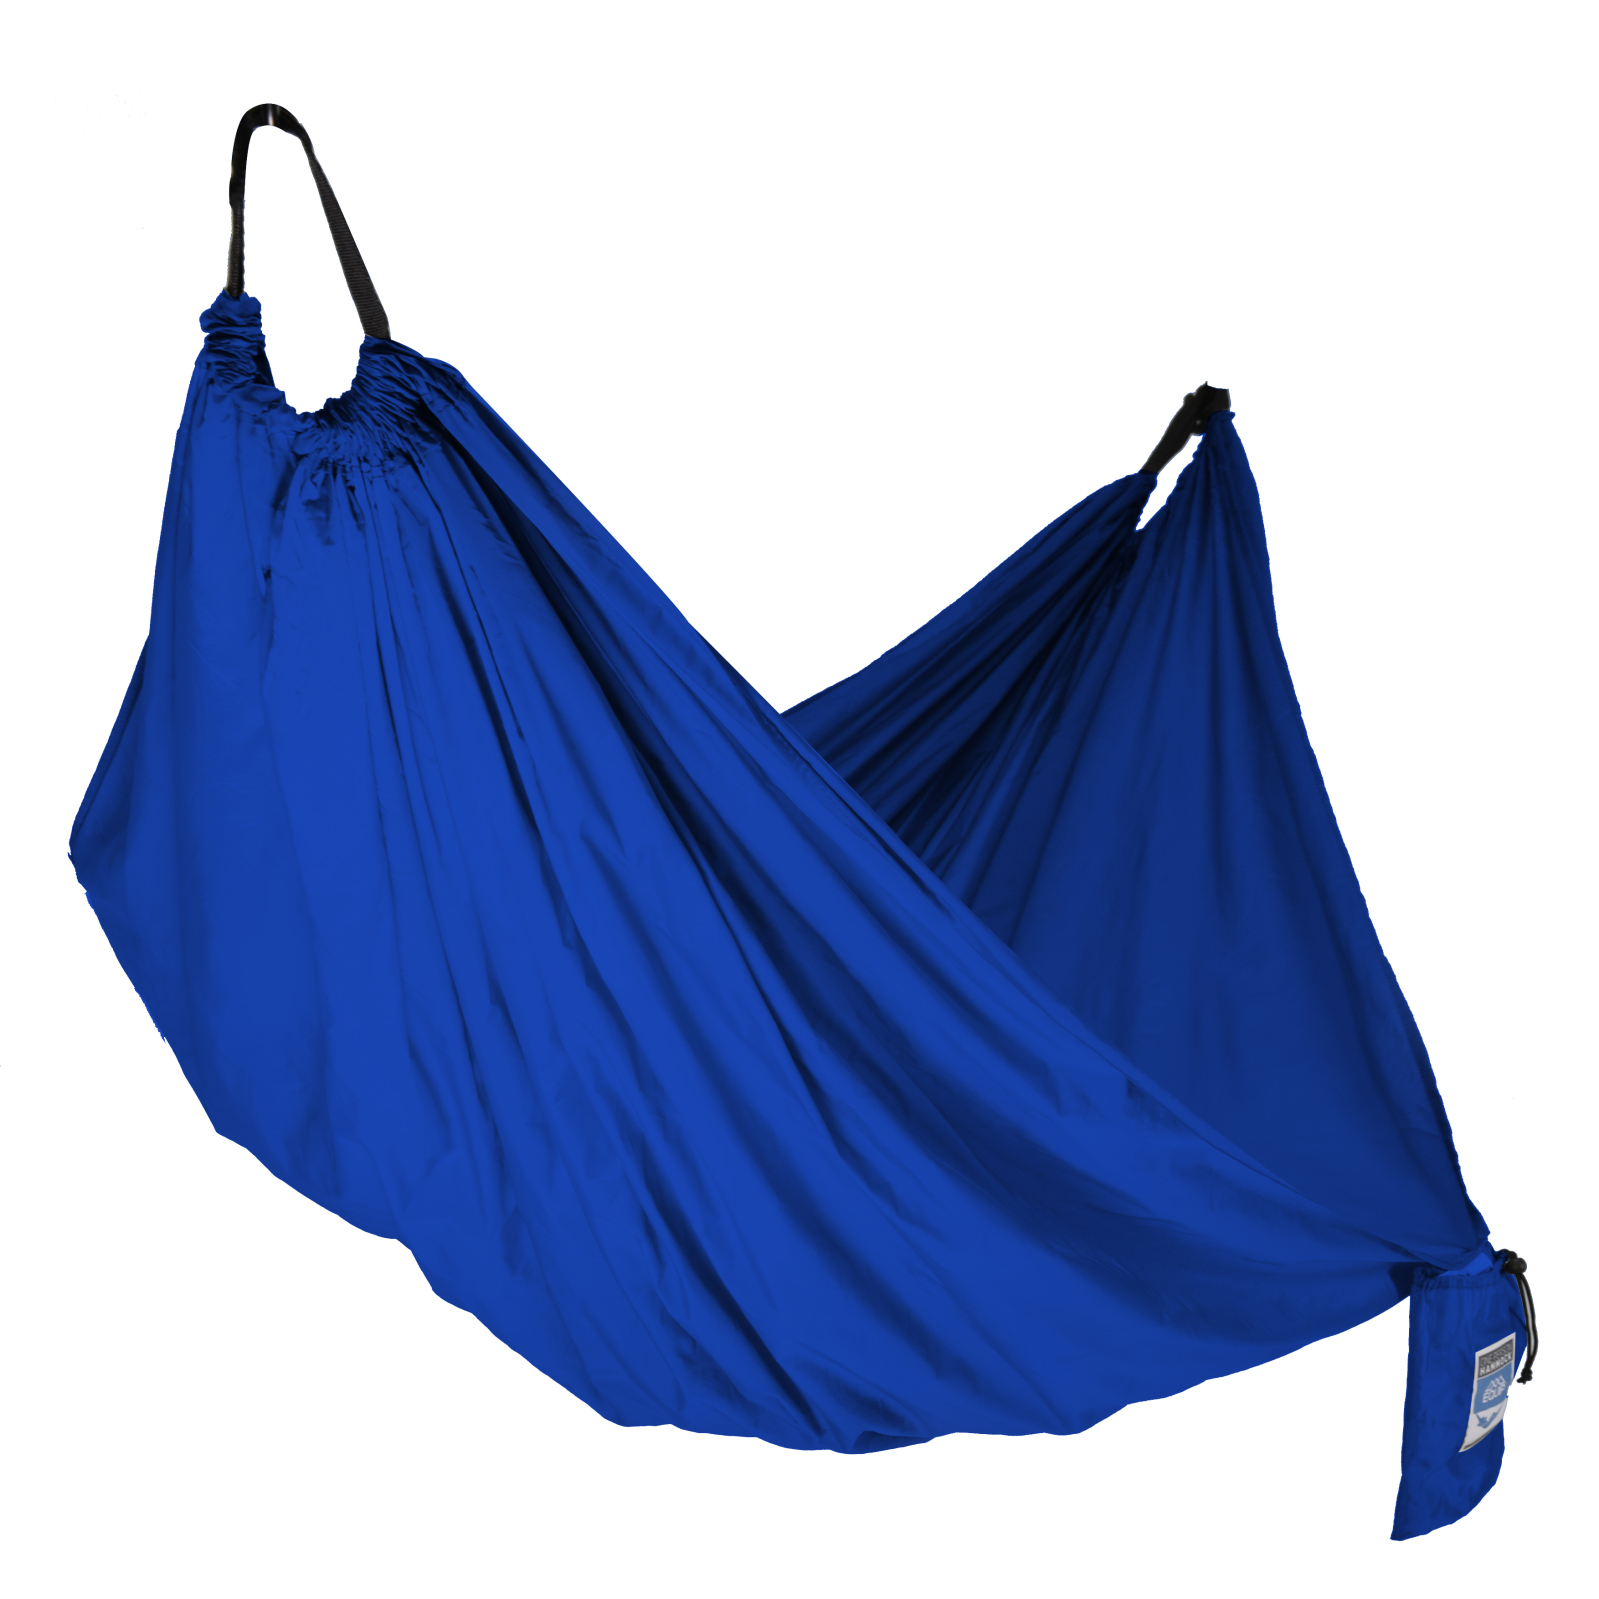 Equip 1 Person Hammock Blue Walmart Inventory Checker